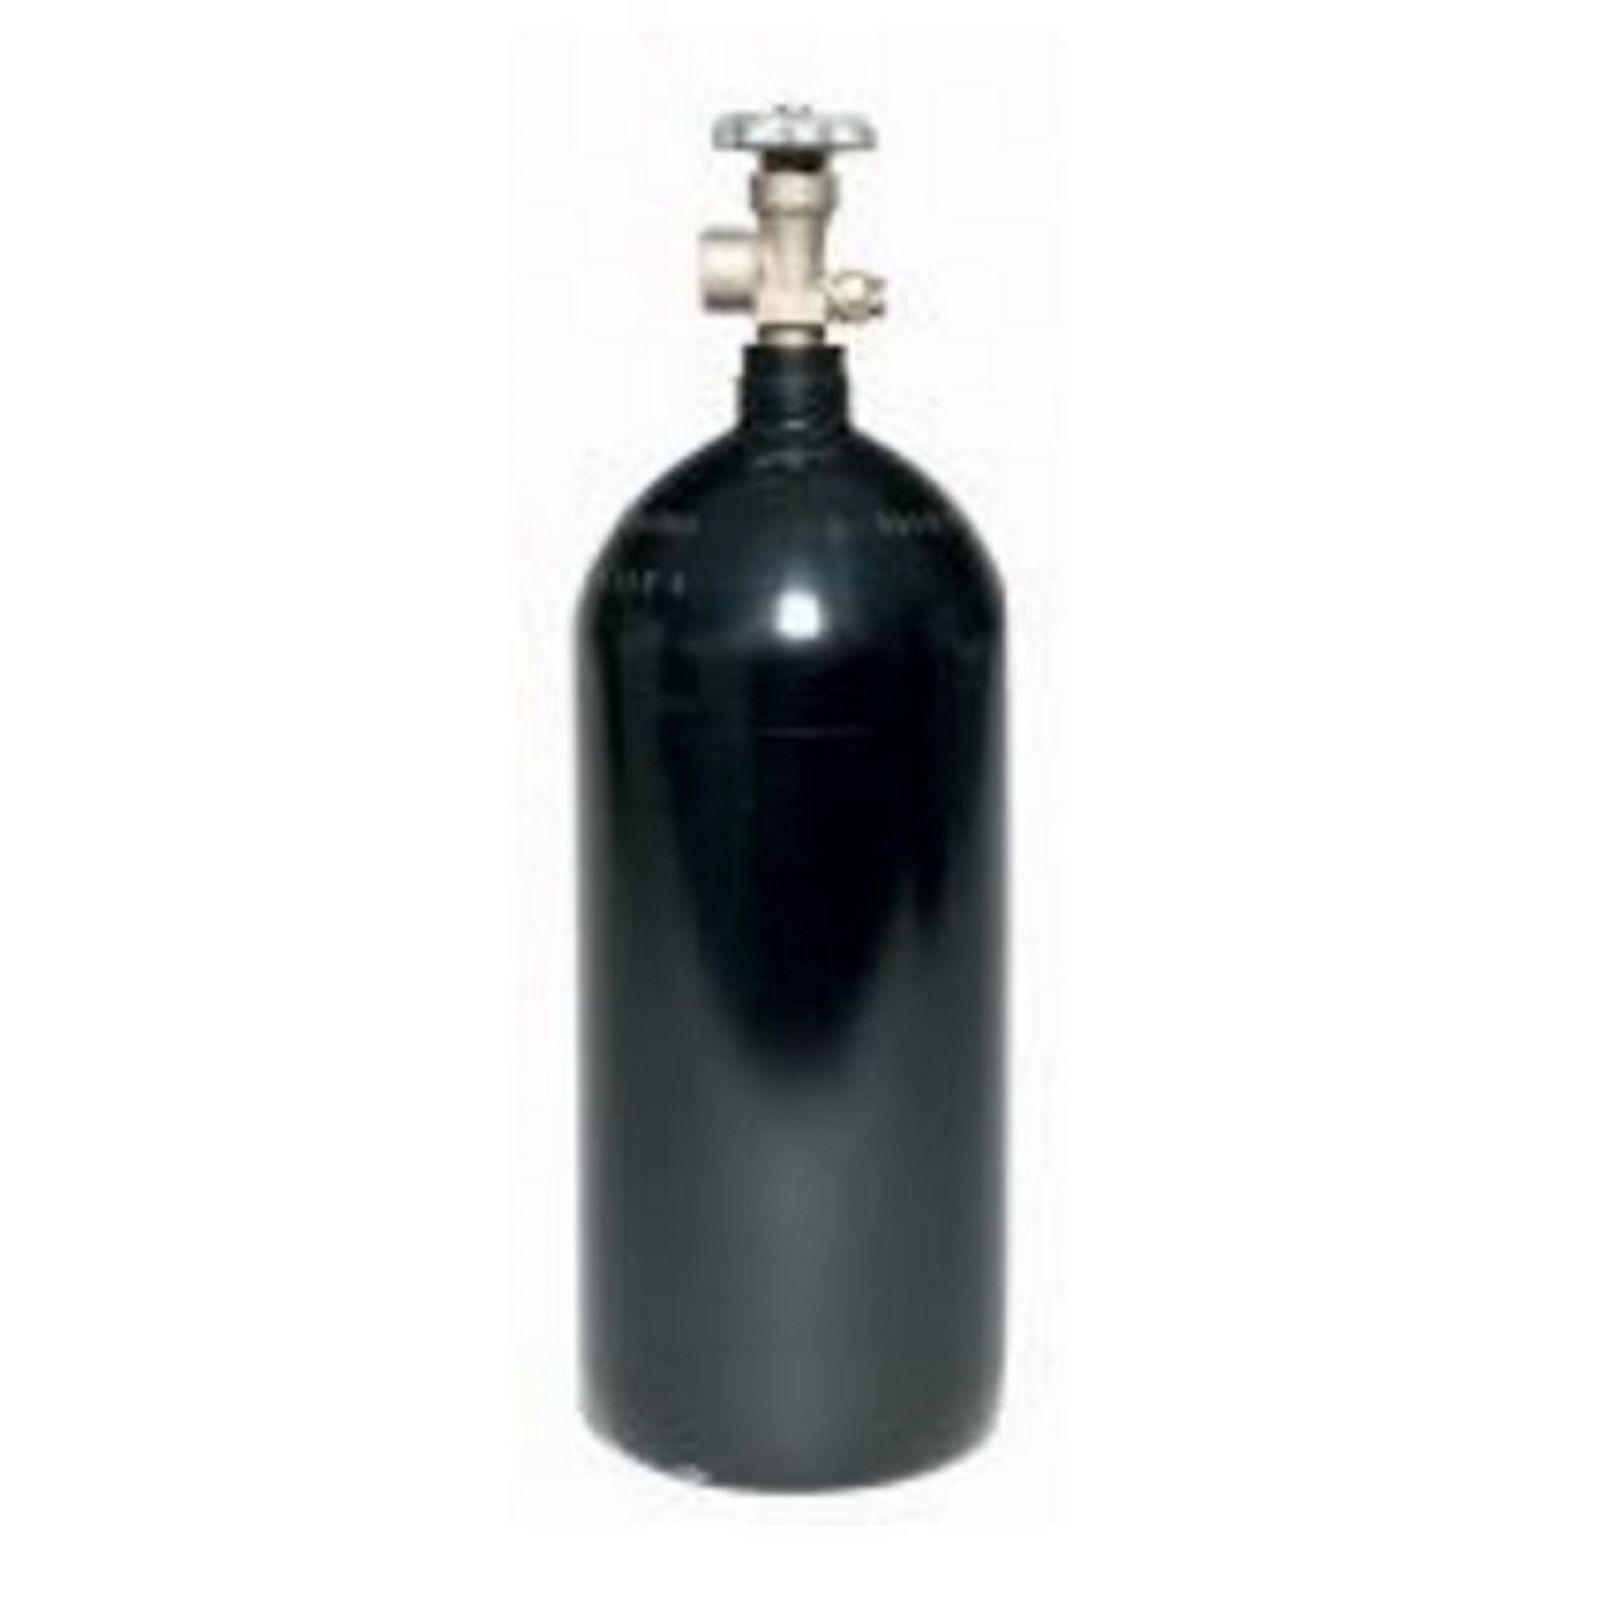 TMG 55NIP - Industrial Nitrogen 55 Cubic Foot Tank - Purchase of Tank